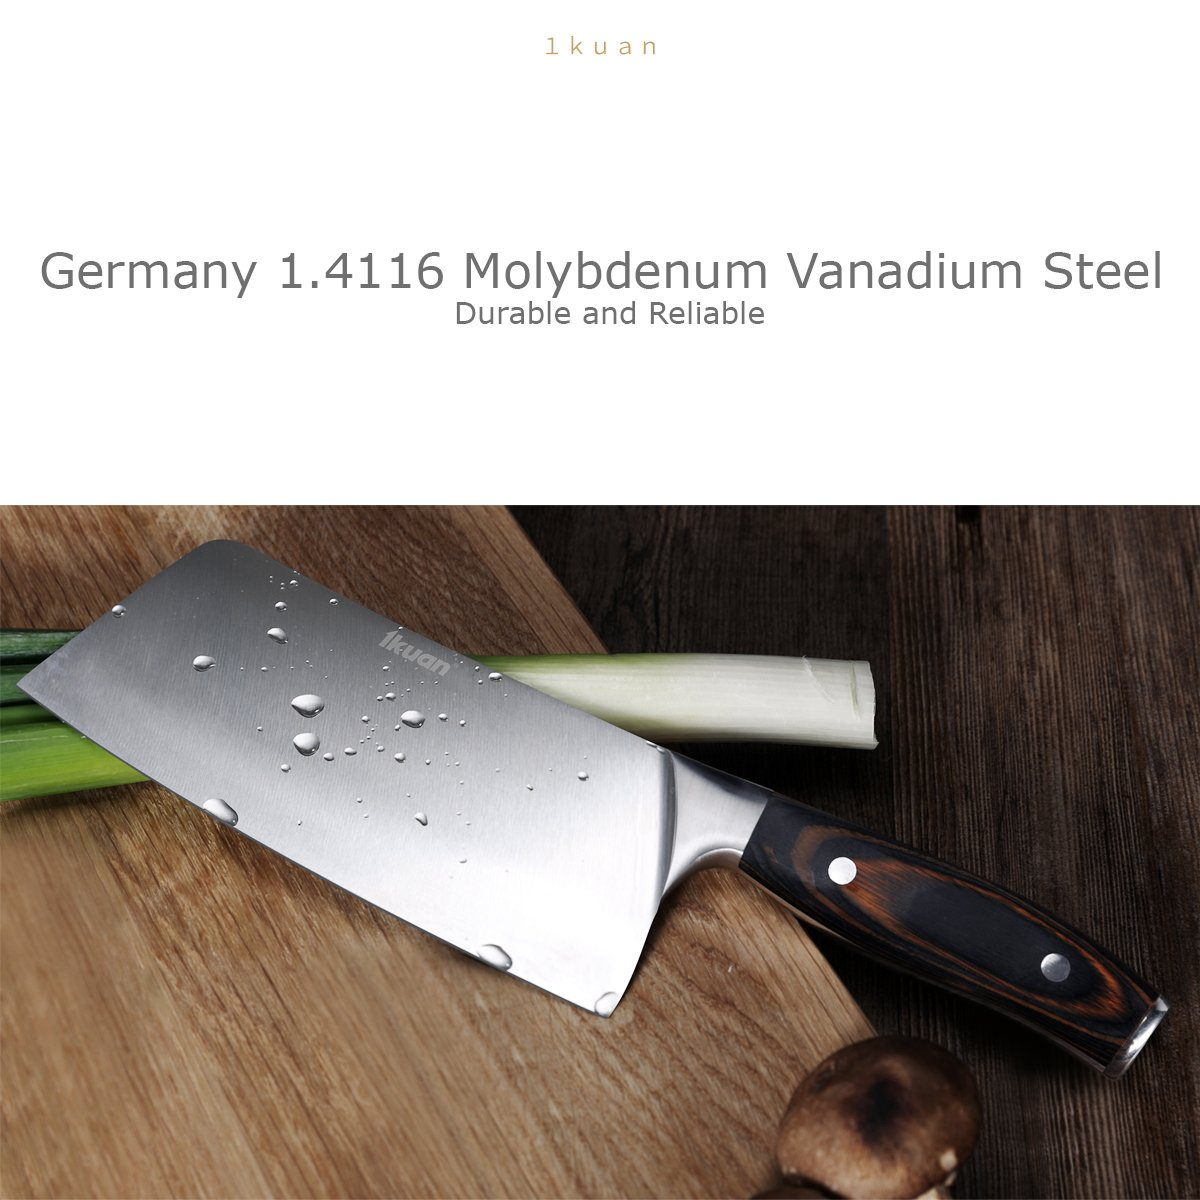 1Kuan – 7-Inch Stainless Steel Choppers – Cleaver – Butcher Knife with wooden handle Multipurpose for home kitchen or Restaurant